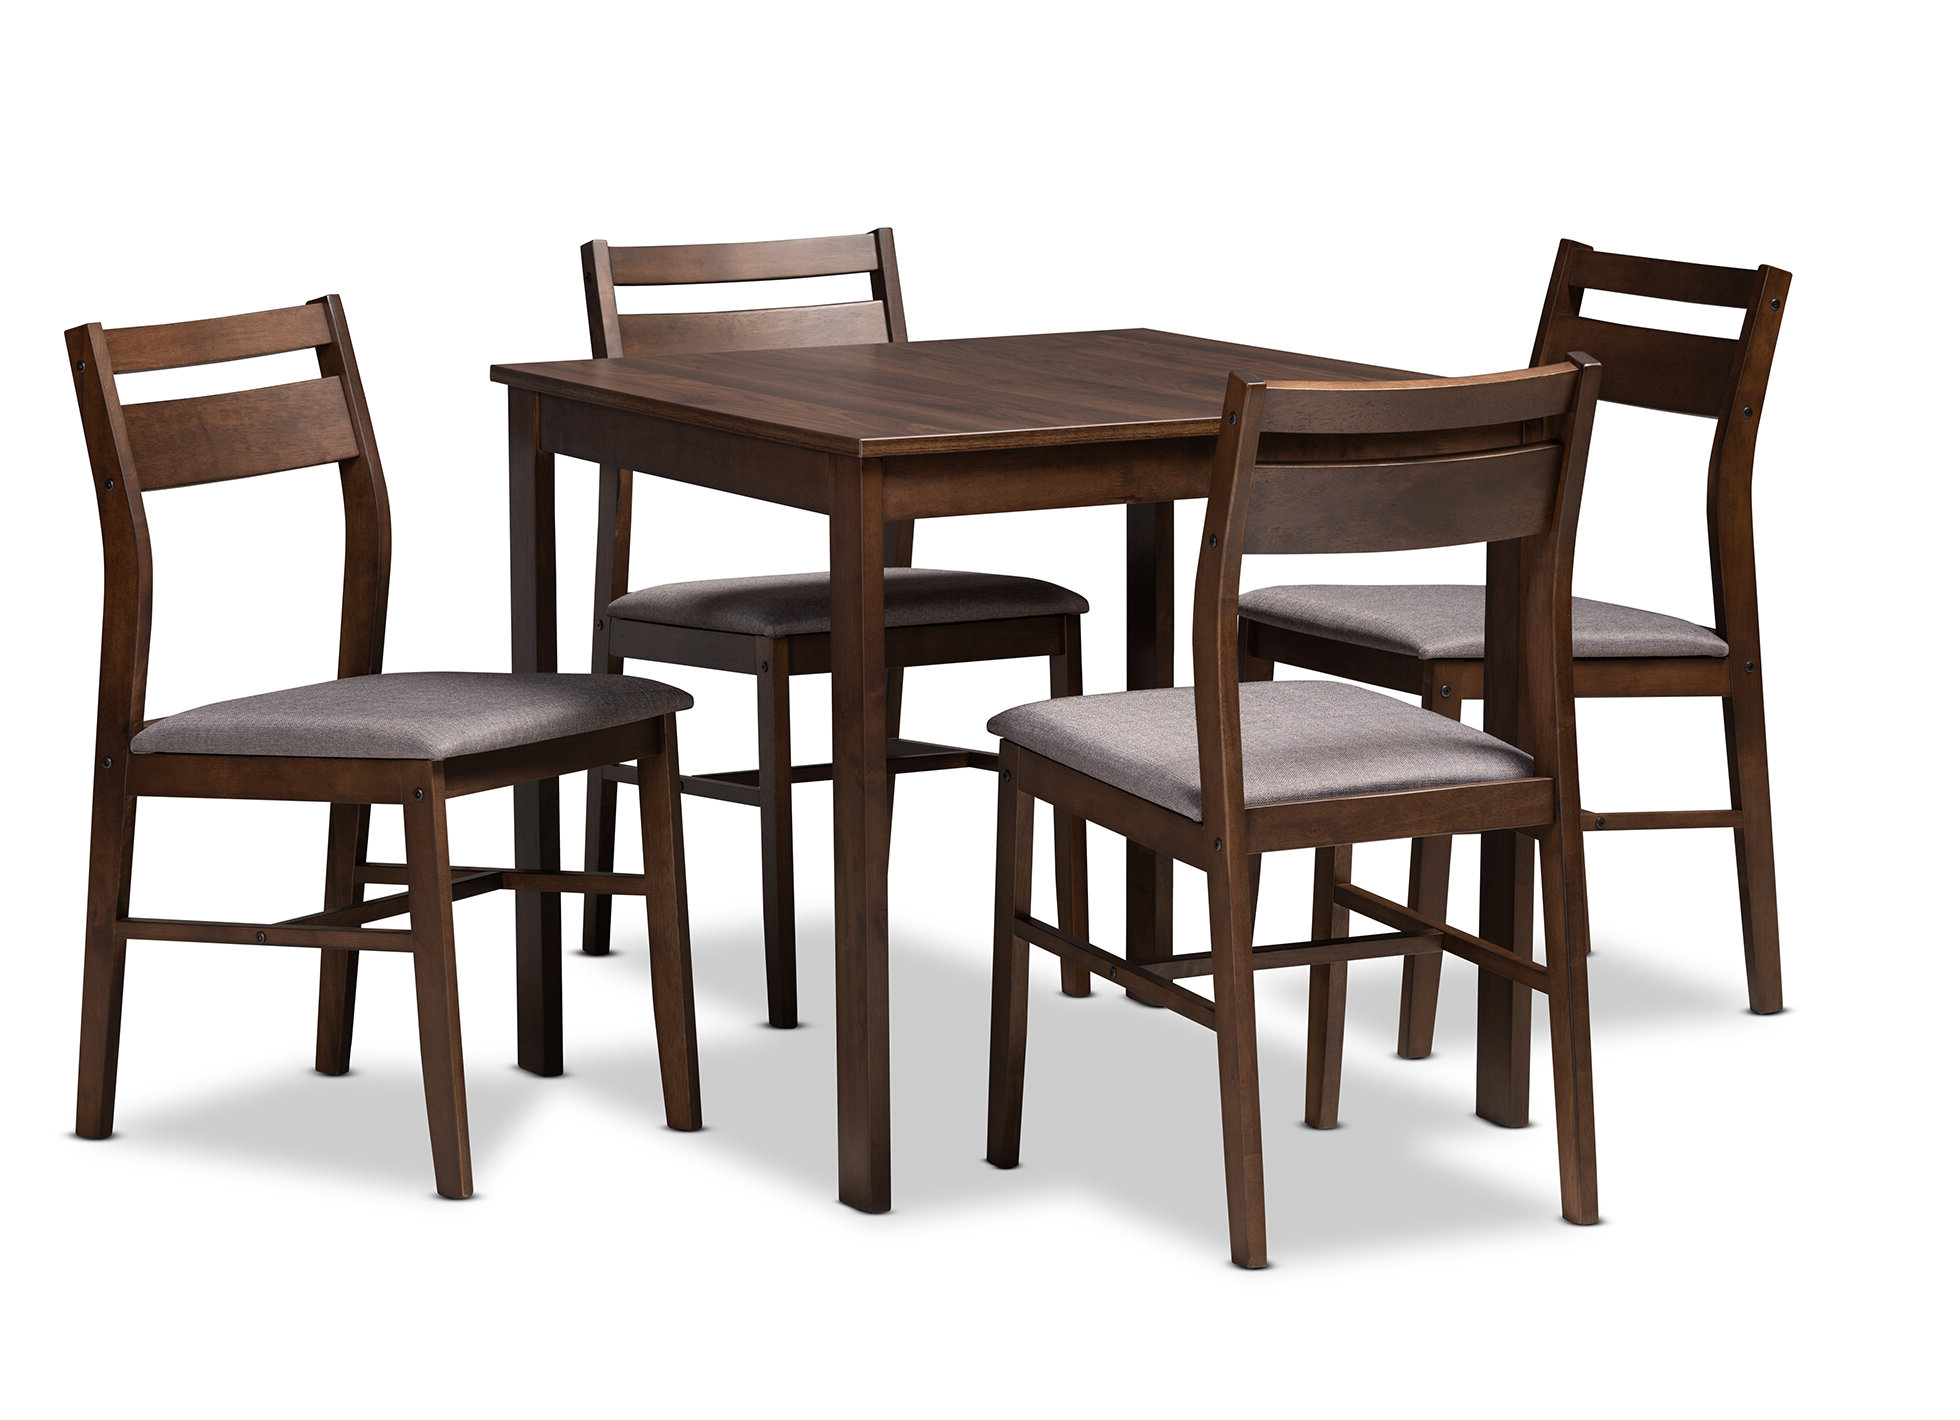 Raphael Modern And Contemporary Upholstered 5 Piece Dining Set With Widely Used Tejeda 5 Piece Dining Sets (Gallery 19 of 20)